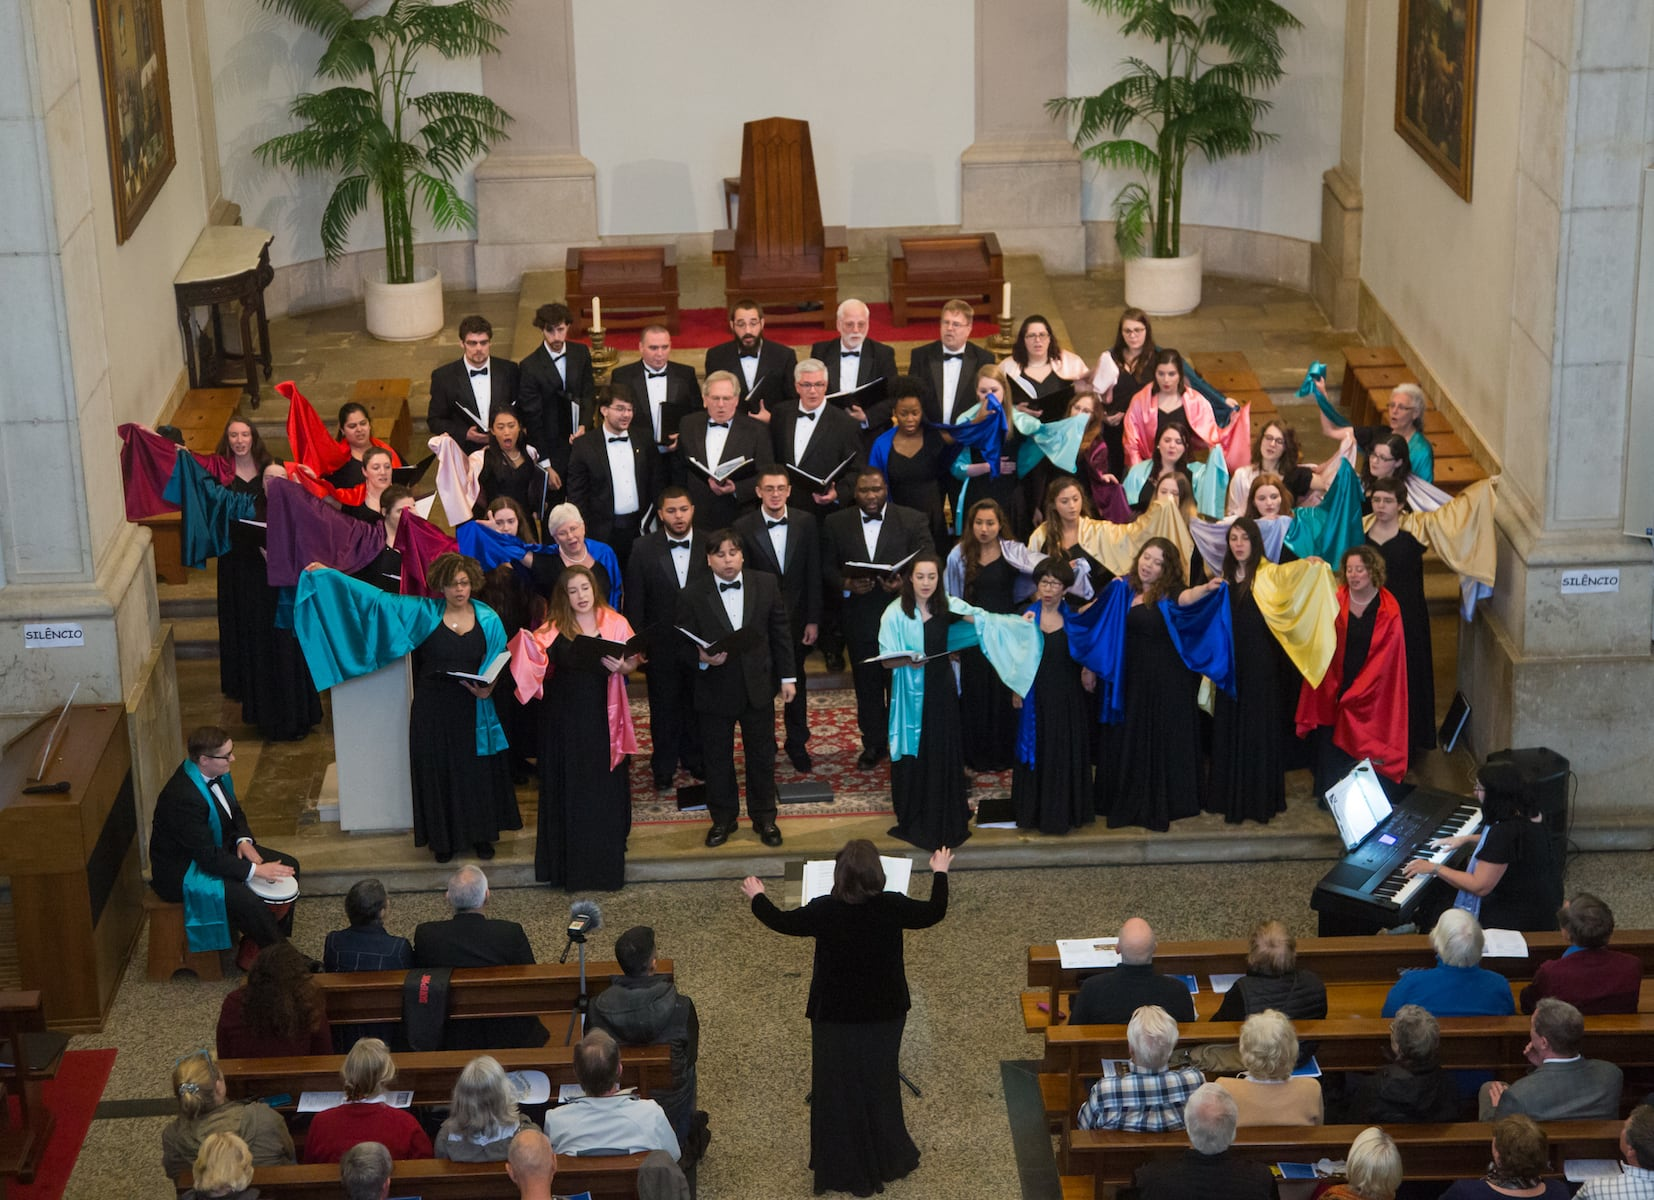 Choir performance